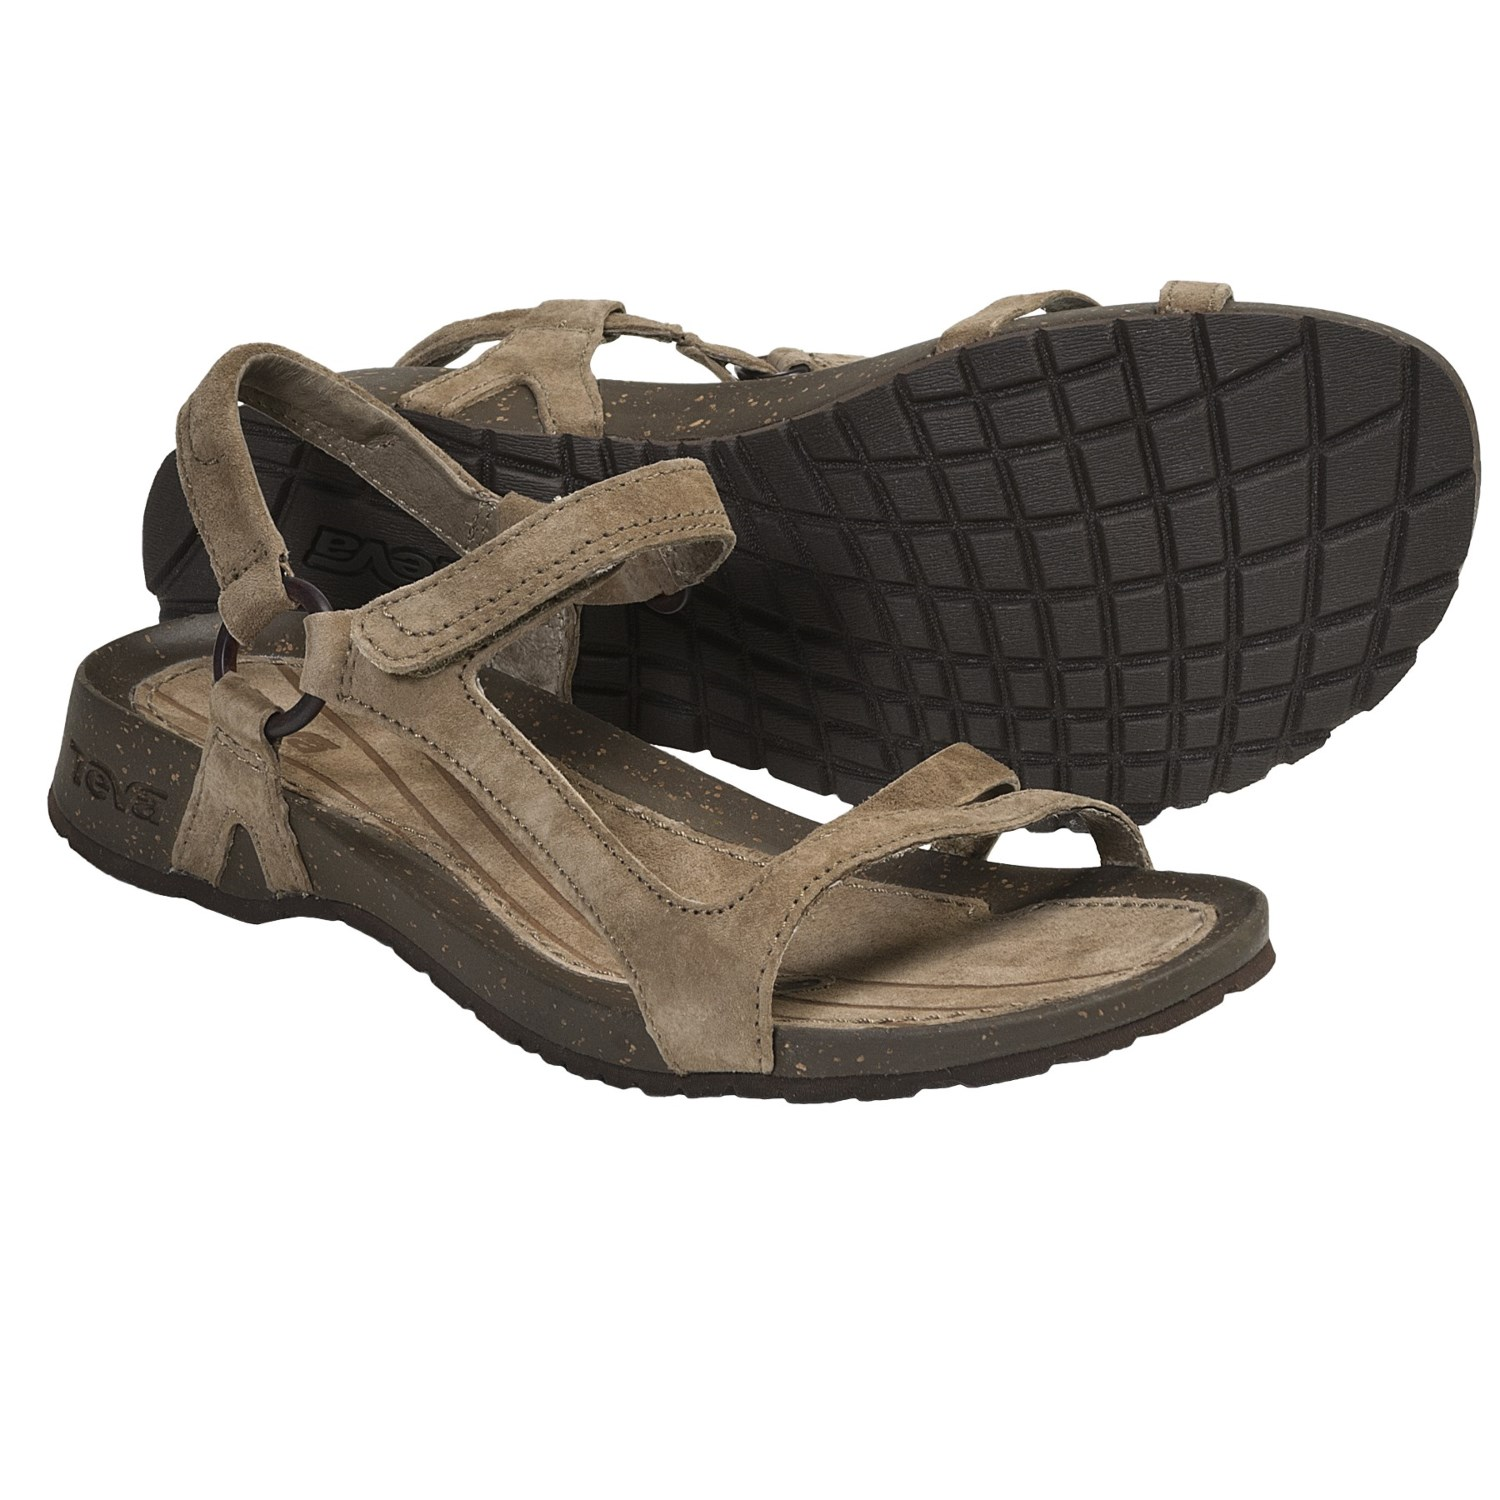 Teva Cabrillo Universal Suede Sandals (For Women) - Save 68